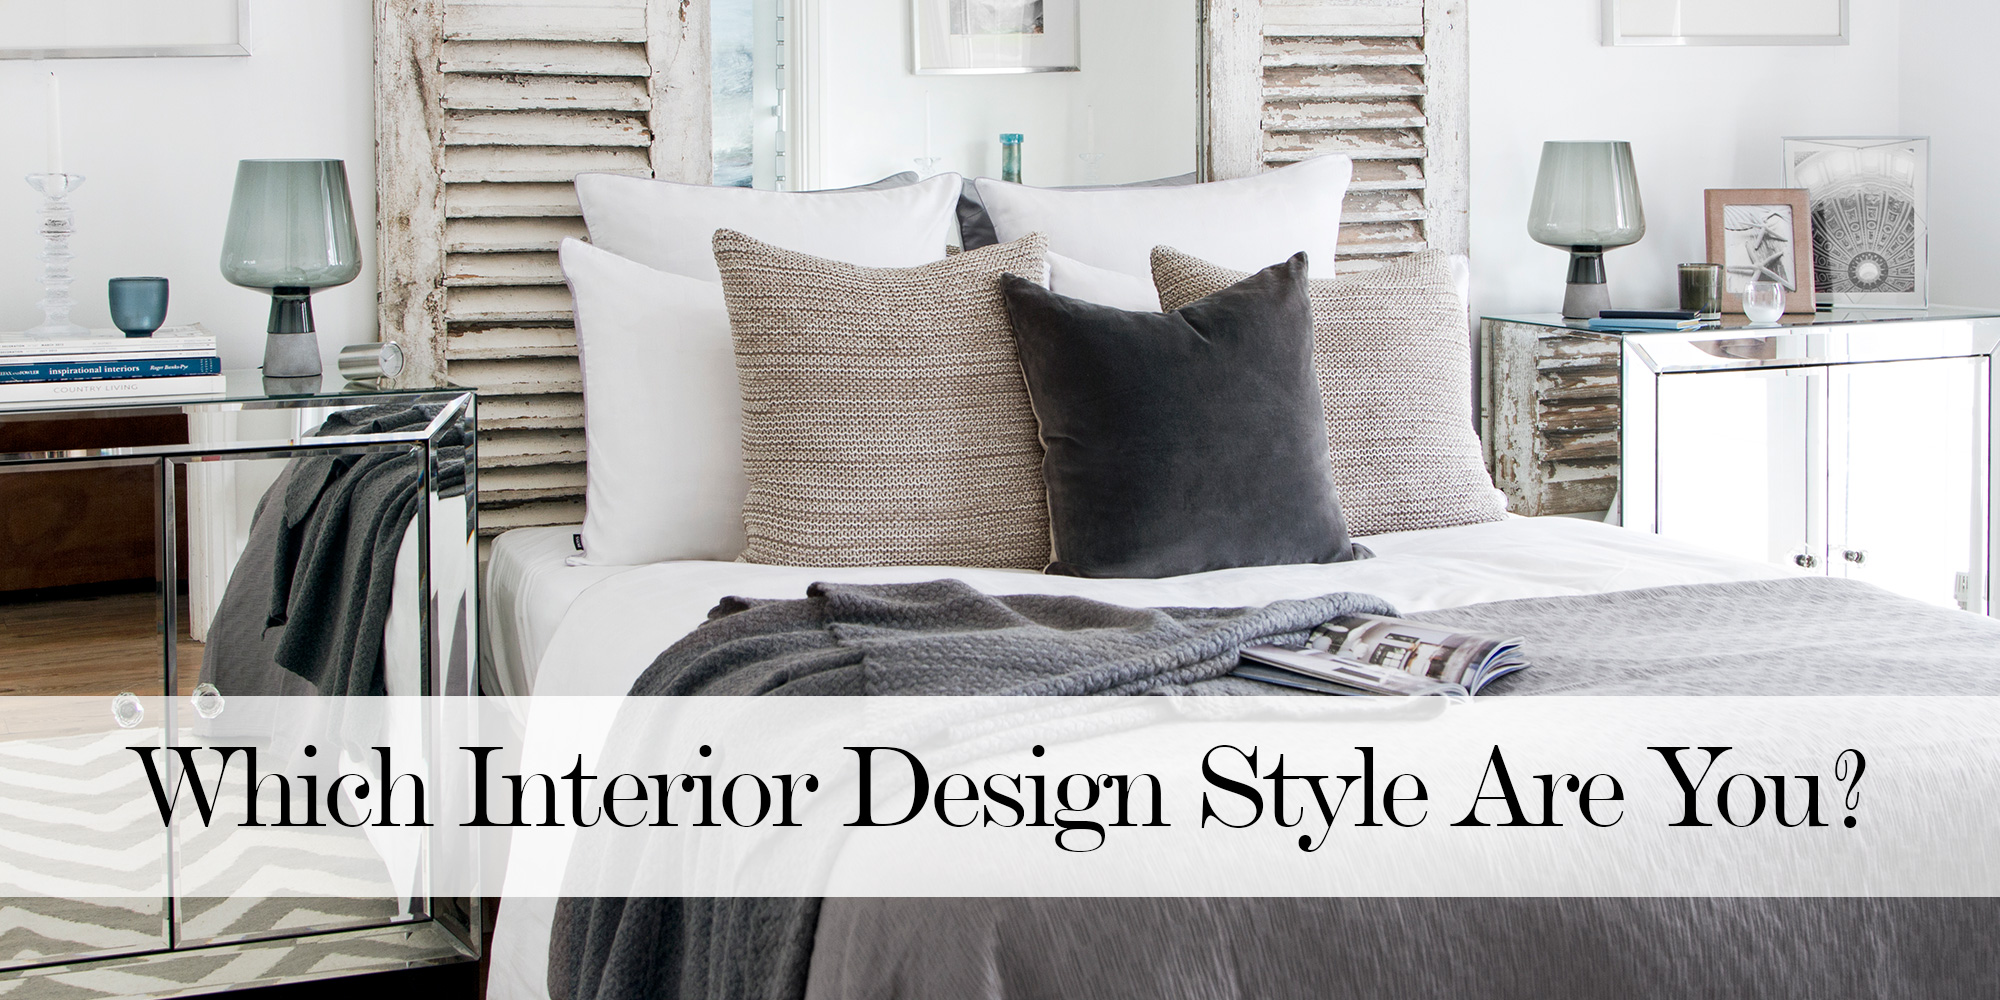 Which Interior Design Style Are You